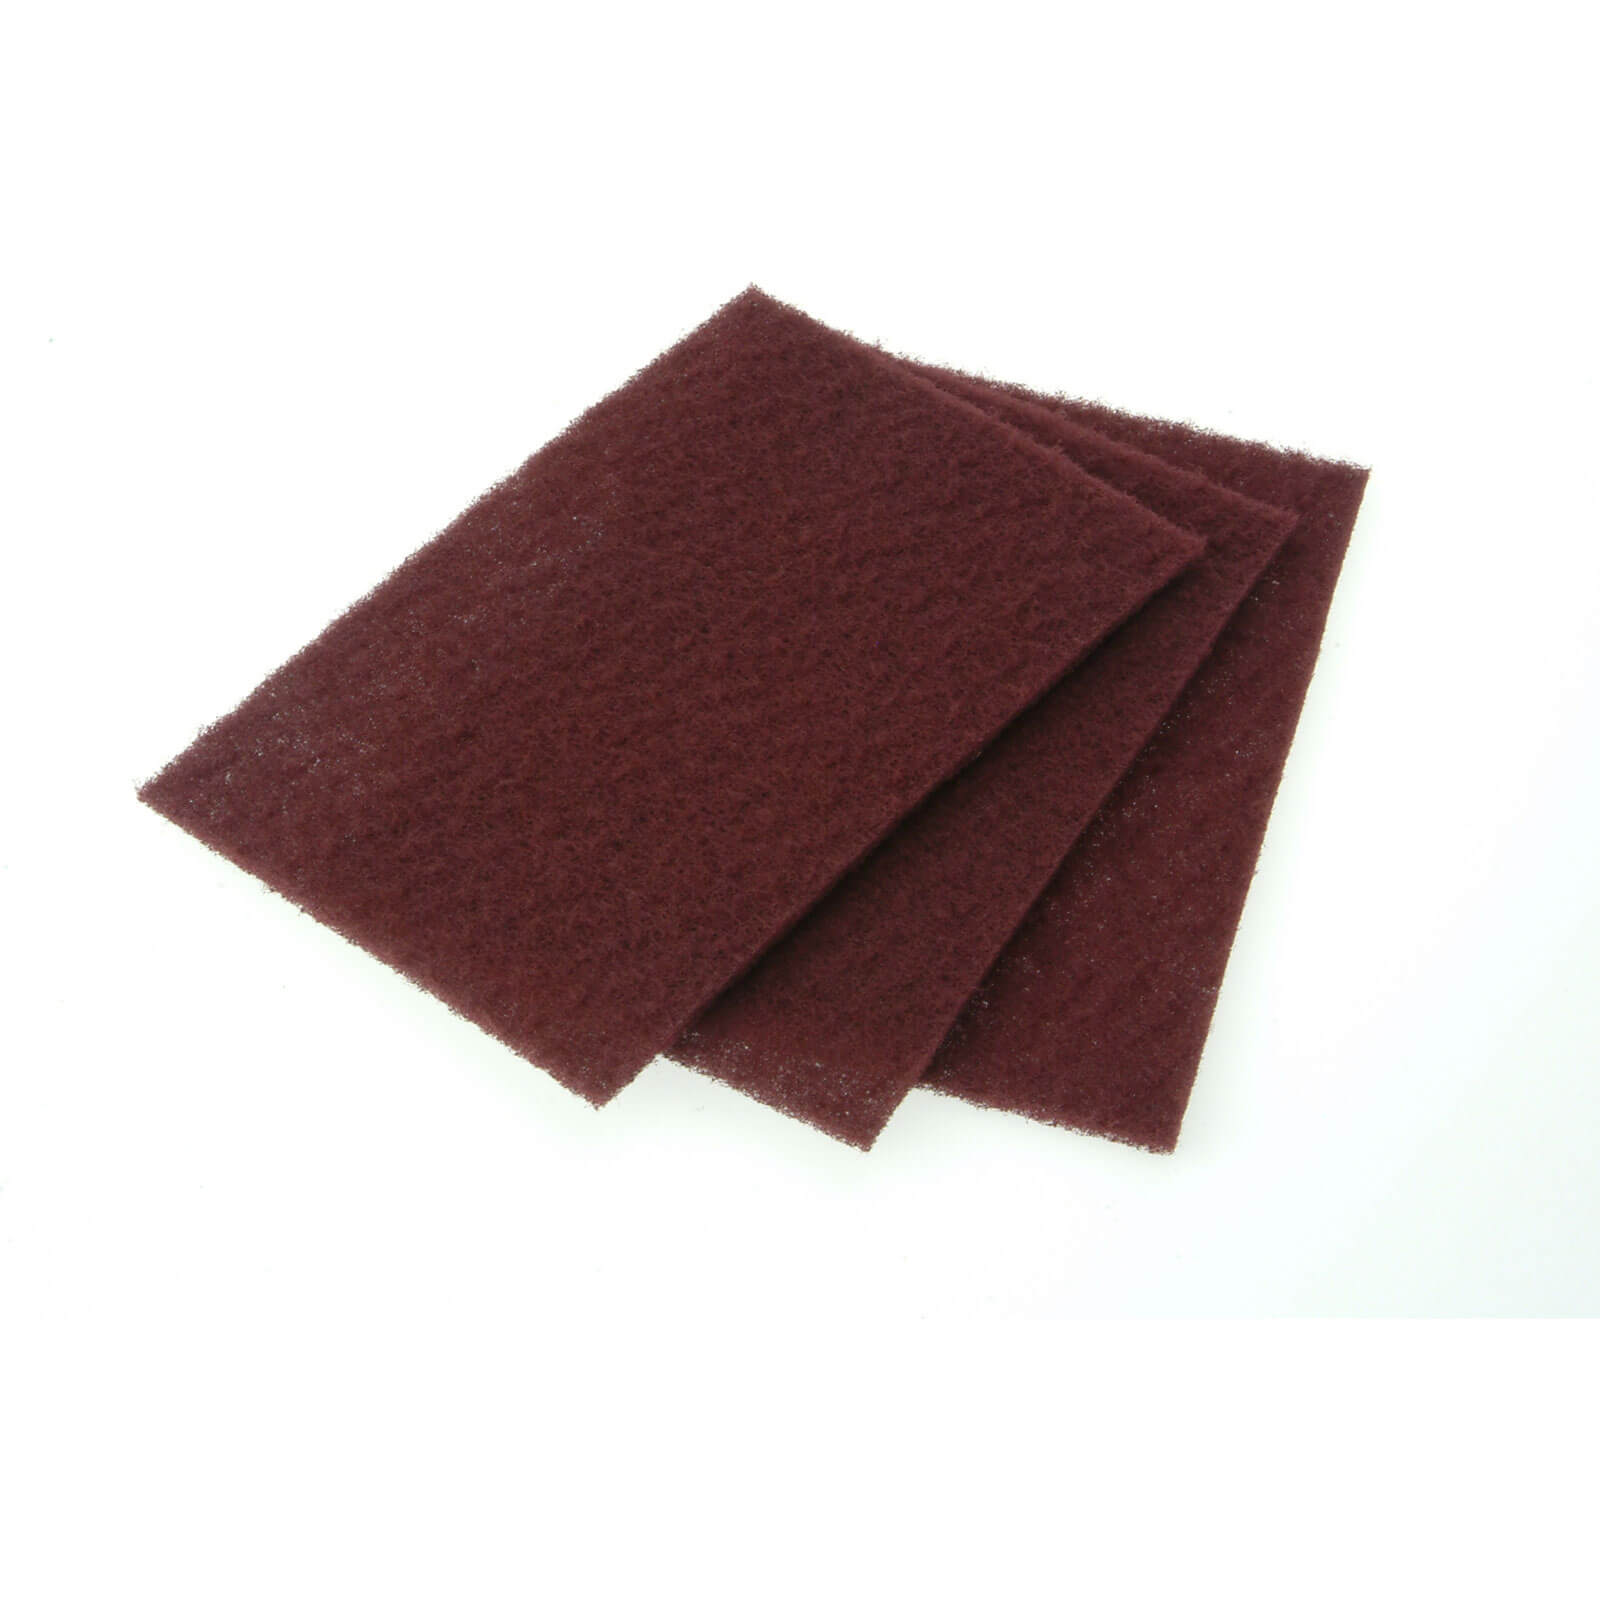 Faithfull Hand Pad Maroon 230X150mm Very Fine S x 10